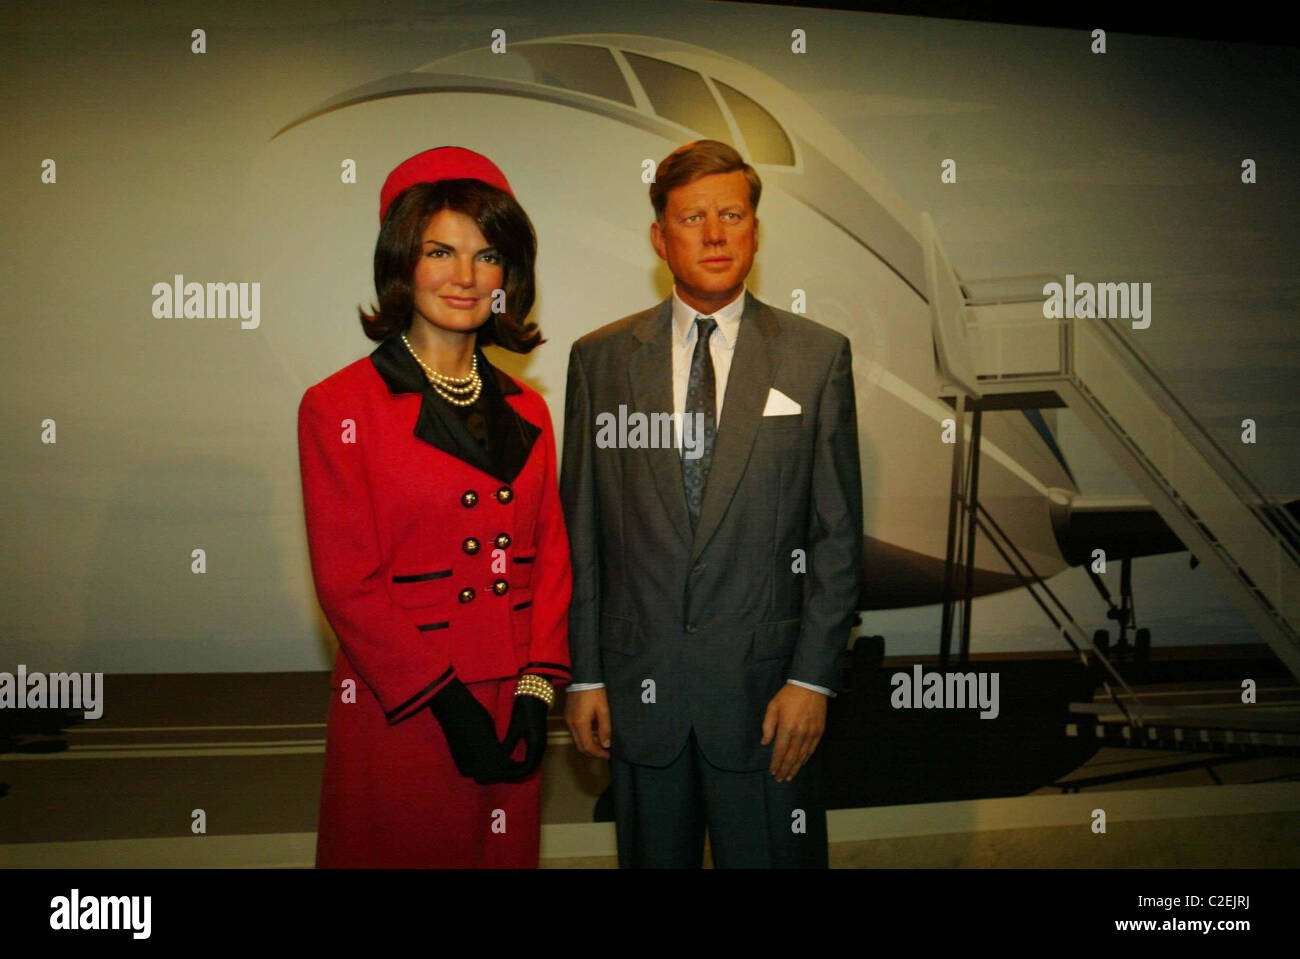 d2102482b19 Jackie Kennedy and John F. Kennedy Madame Tussauds held a gala to open its  new wax museum in the nation s capitol Washington